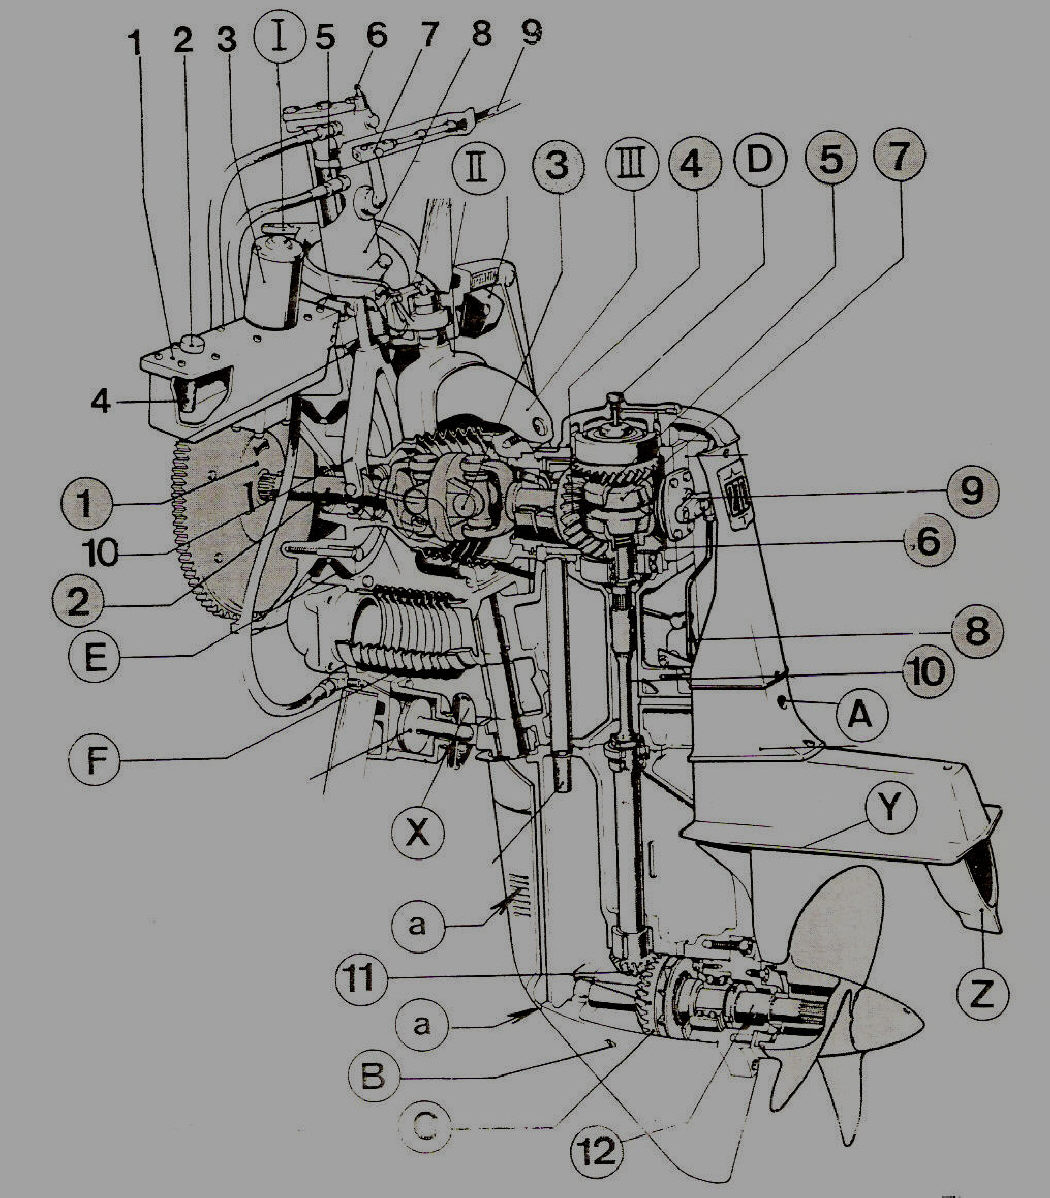 Marine Engine Diagram Wiring Will Be A Thing Of Hyundai Grace I O Boat 16 Images Yanmar Diesel